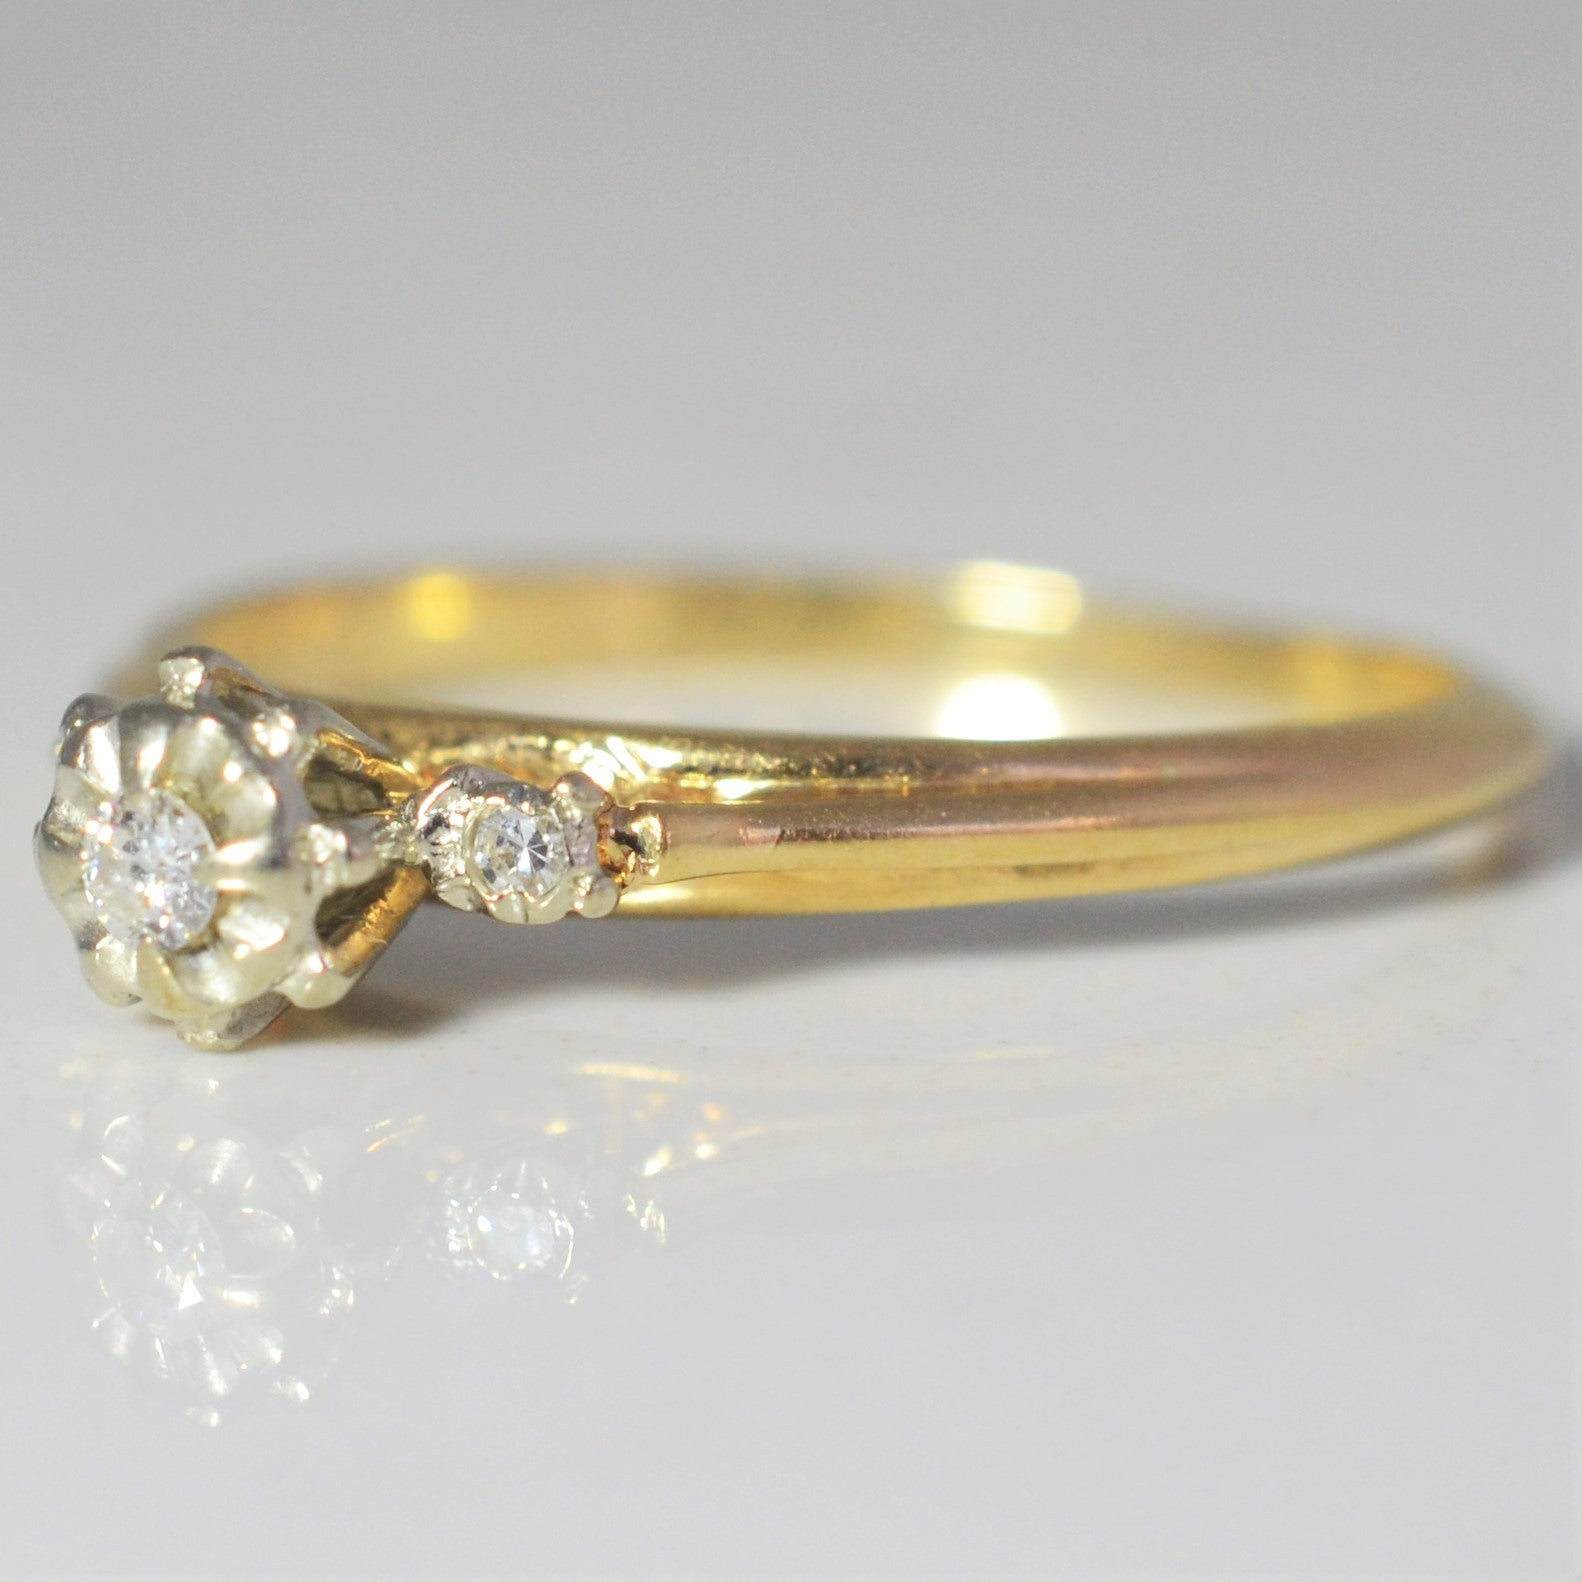 Petite Three Stone Ring | 0.05 ctw, SZ 5.75 |